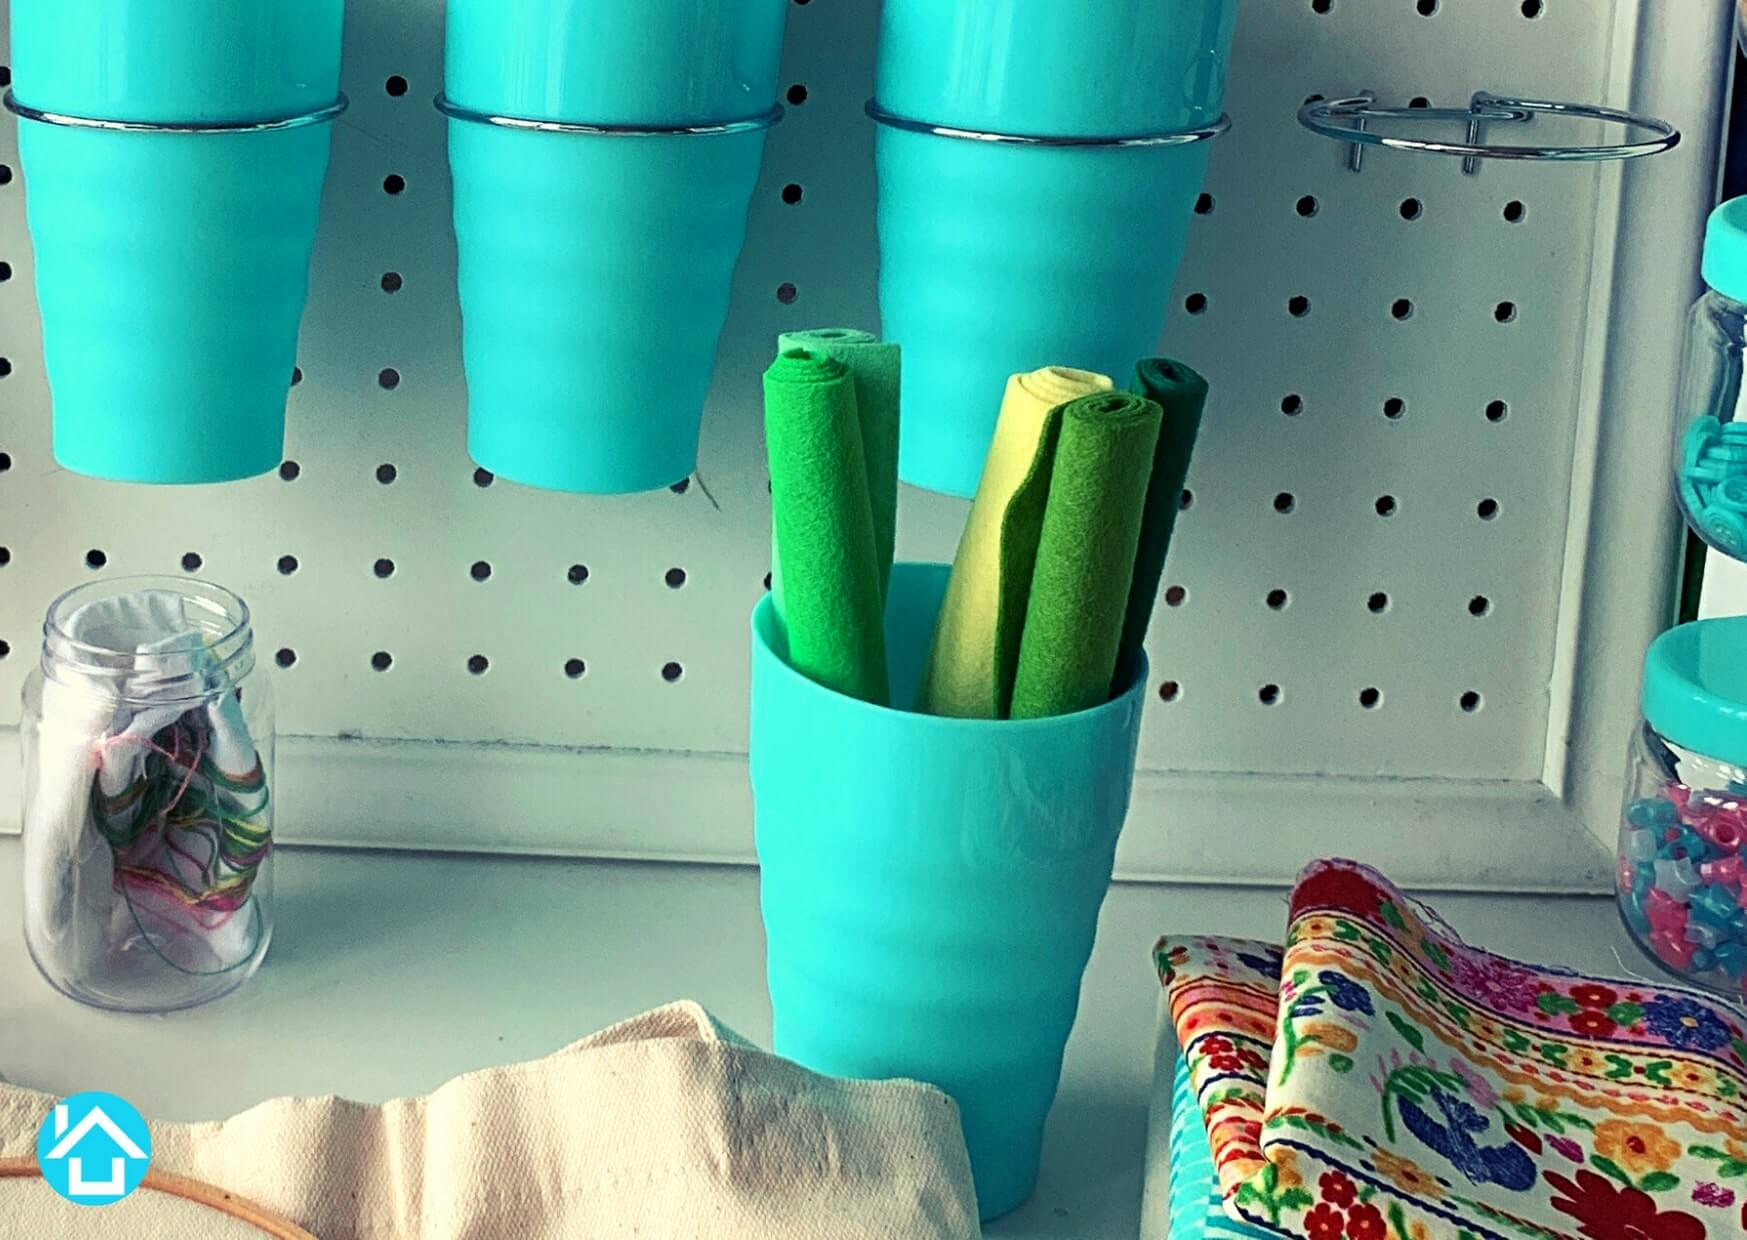 Round Pegboard Bins and Cups